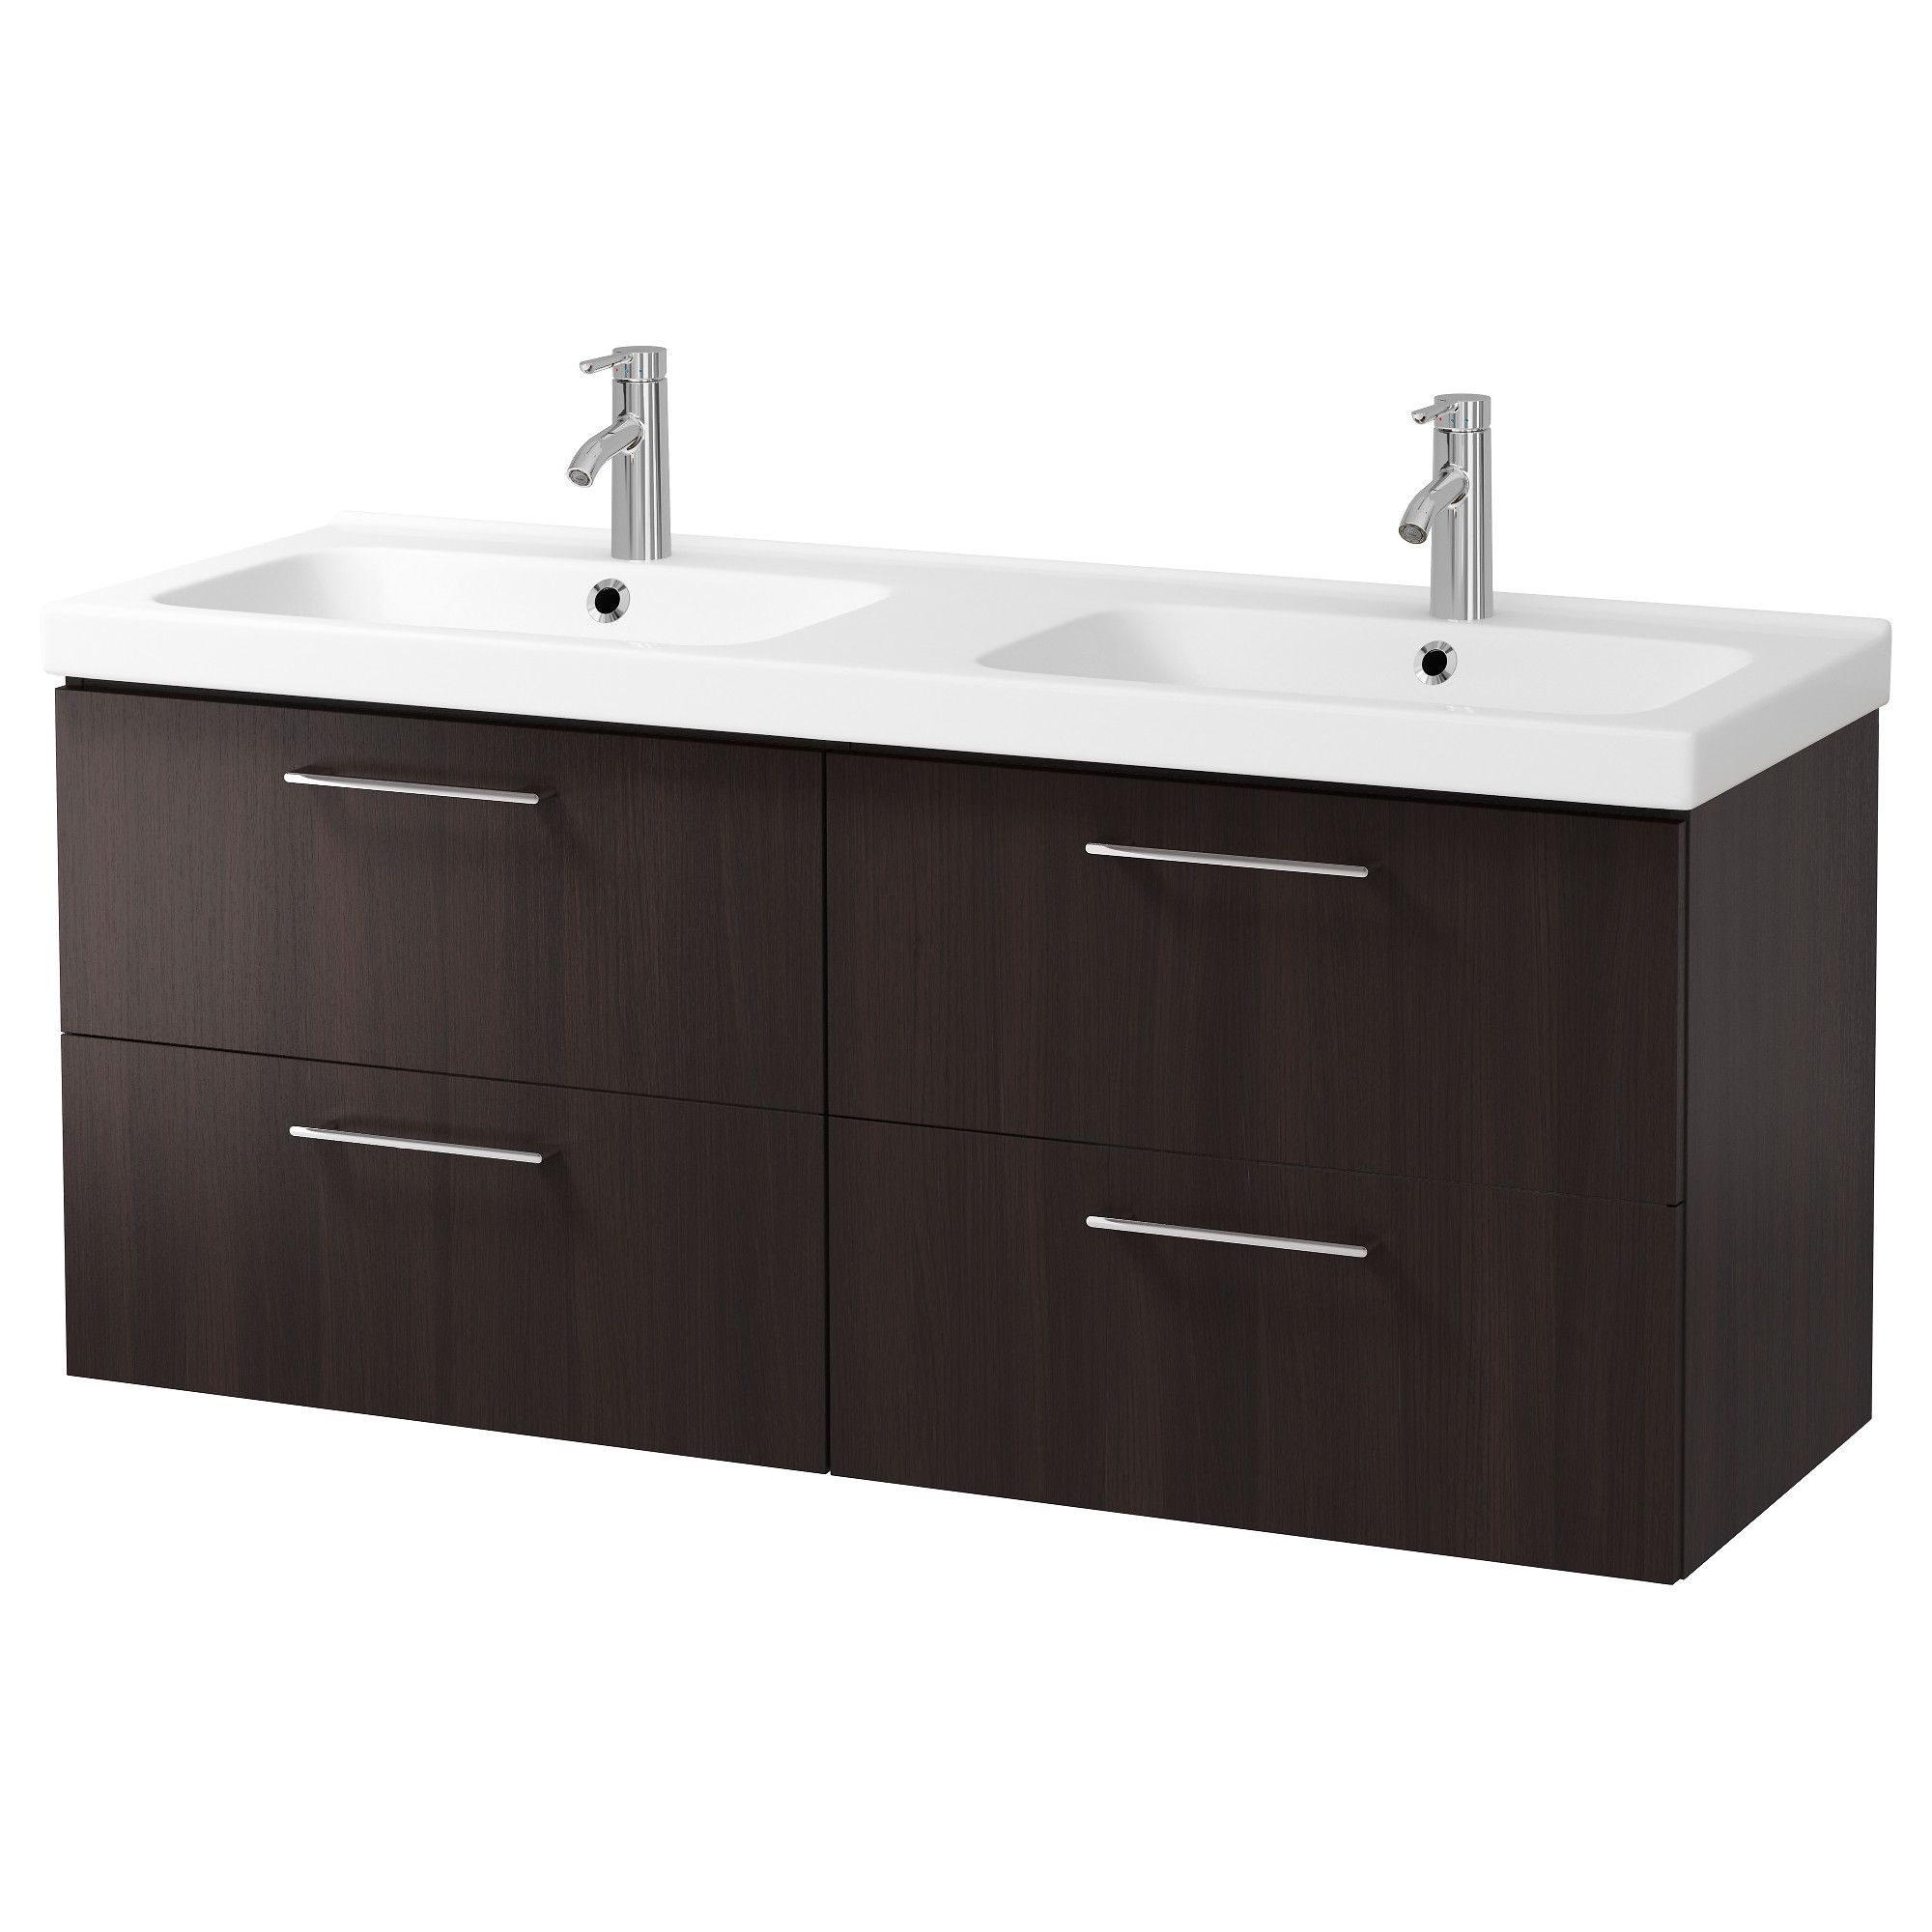 Ikea Godmorgon Odensvik Sink Cabinet With 4 Drawers